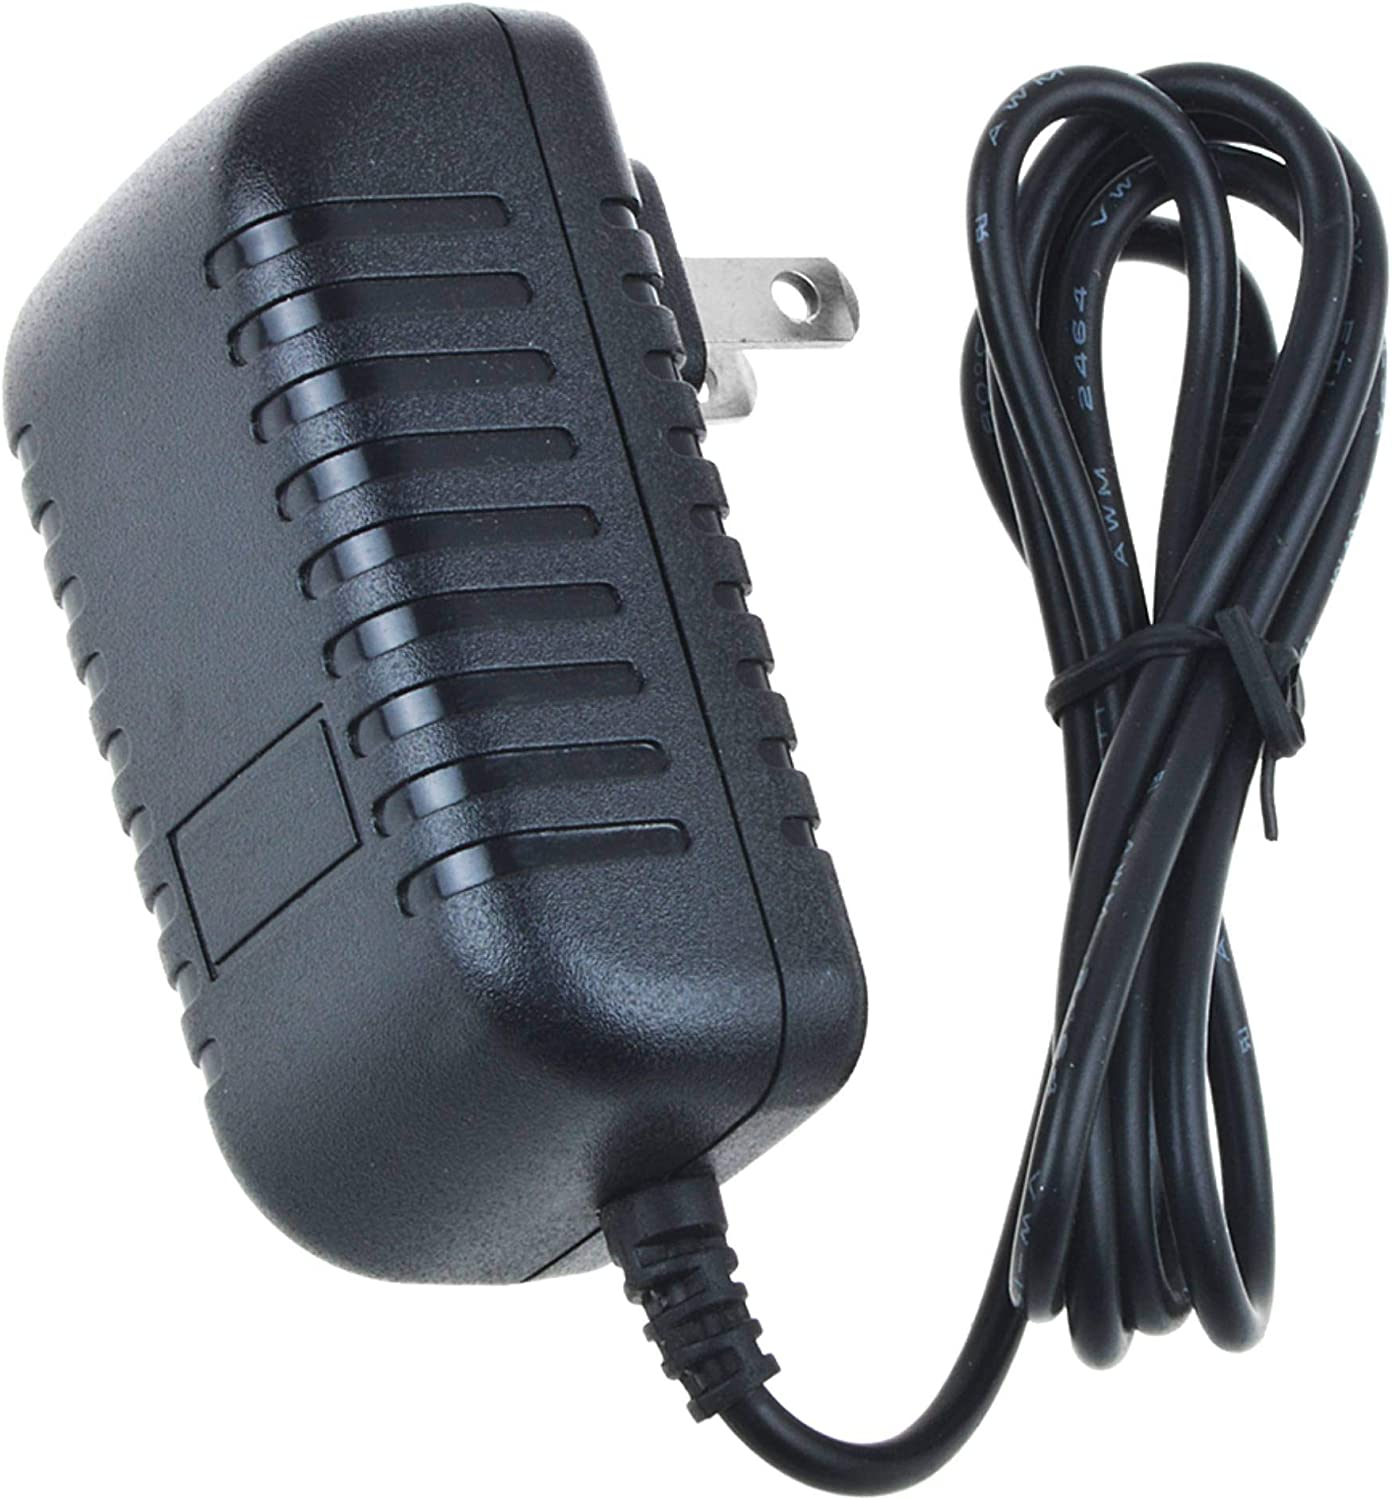 Milwaukee Mall AT LCC AC Adapter for Casio Keyboar PX-560 Digital PX-360 2021new shipping free Privia